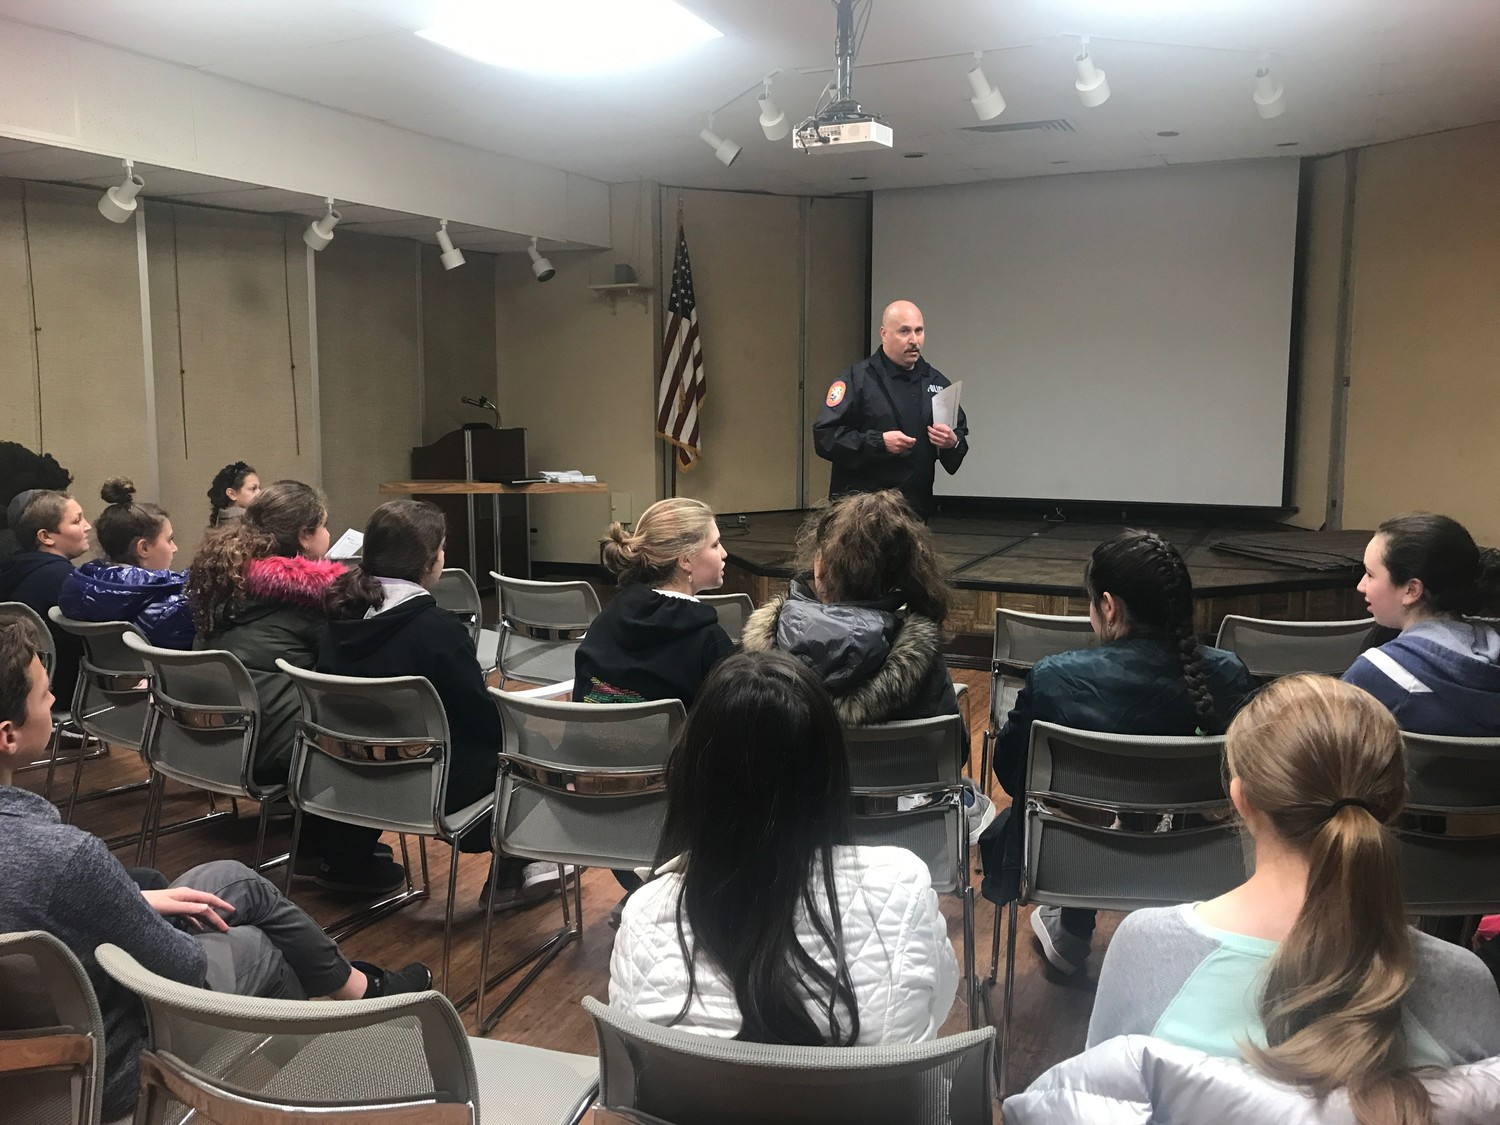 Police officer John Zanni answered questions from local teenagers at Peninsula Public Library who aim to work as babysitters in the Five Towns and surrounding communities.